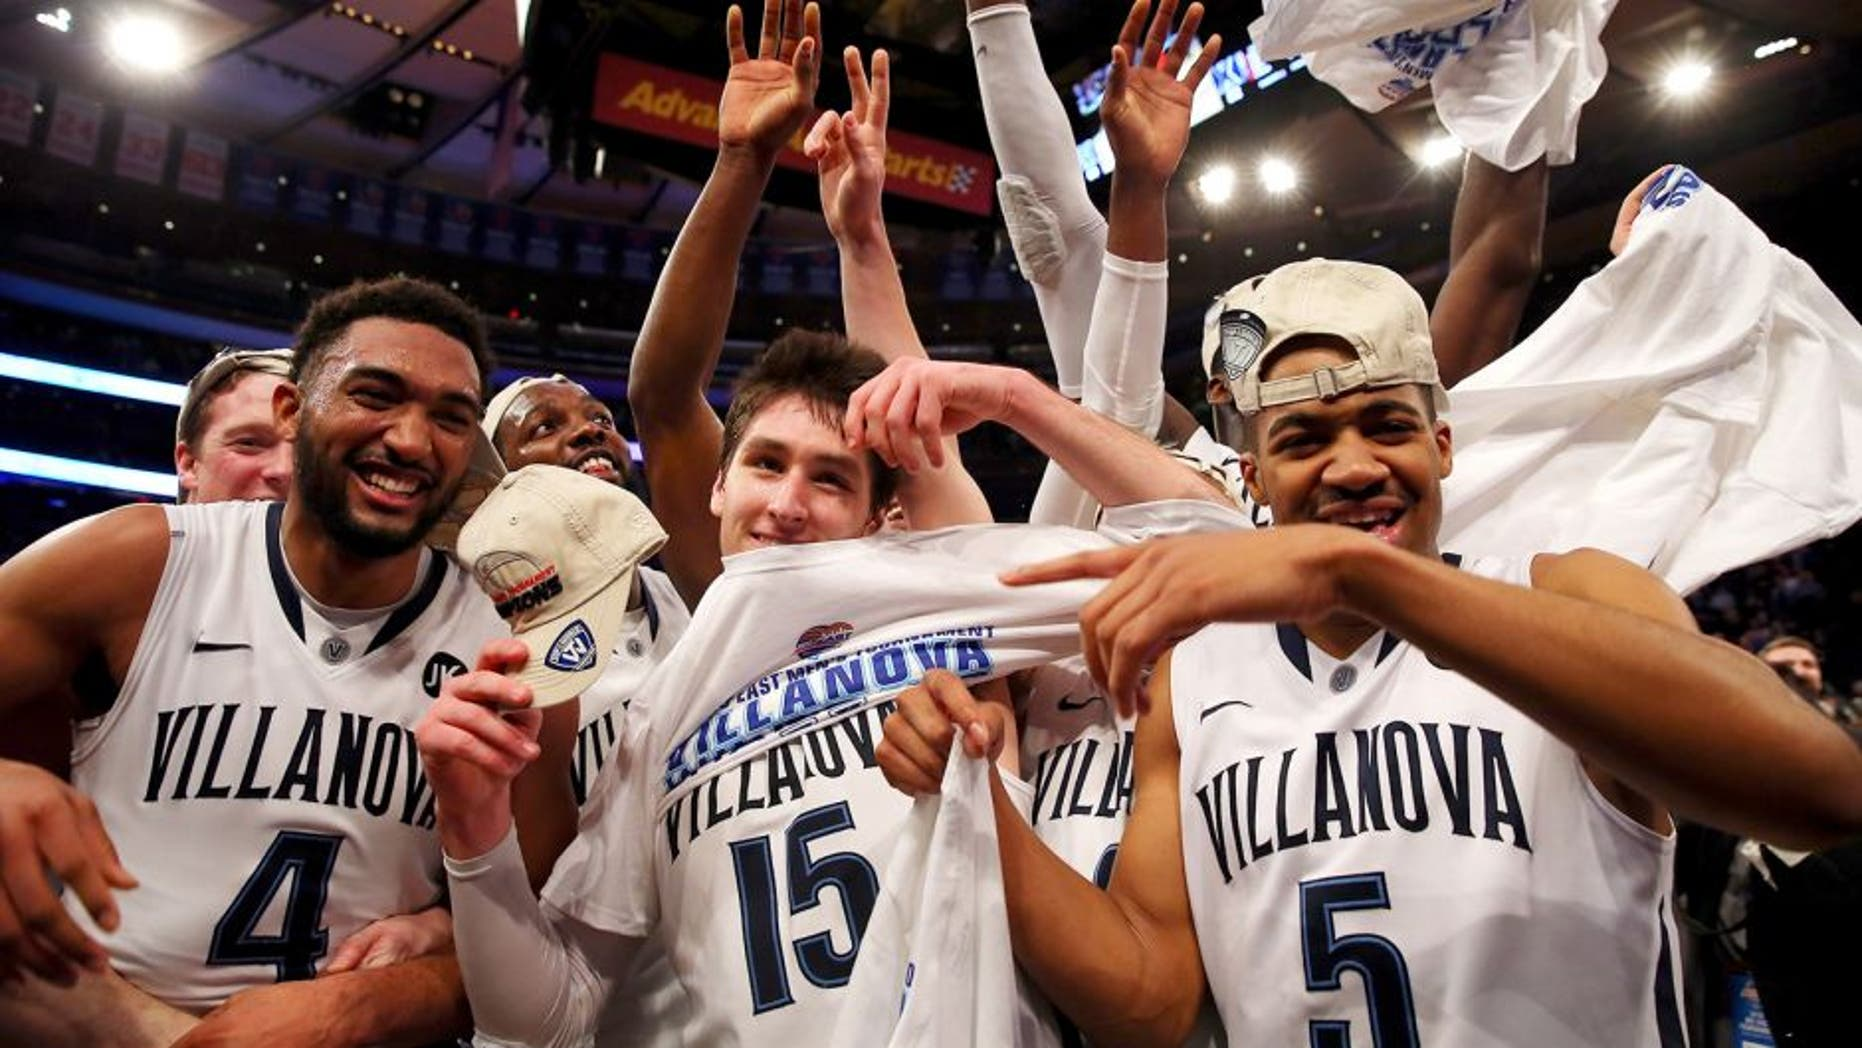 NEW YORK, NY - MARCH 14: Darrun Hilliard #4, Ryan Arcidiacono #15, and Phil Booth #5 of the Villanova Wildcats celebrate on the court after defeating the Xavier Musketeers 69-52 in the championship game of the Big East basketball tournament at Madison Square Garden on March 14, 2015 in New York City. (Photo by Elsa/Getty Images)